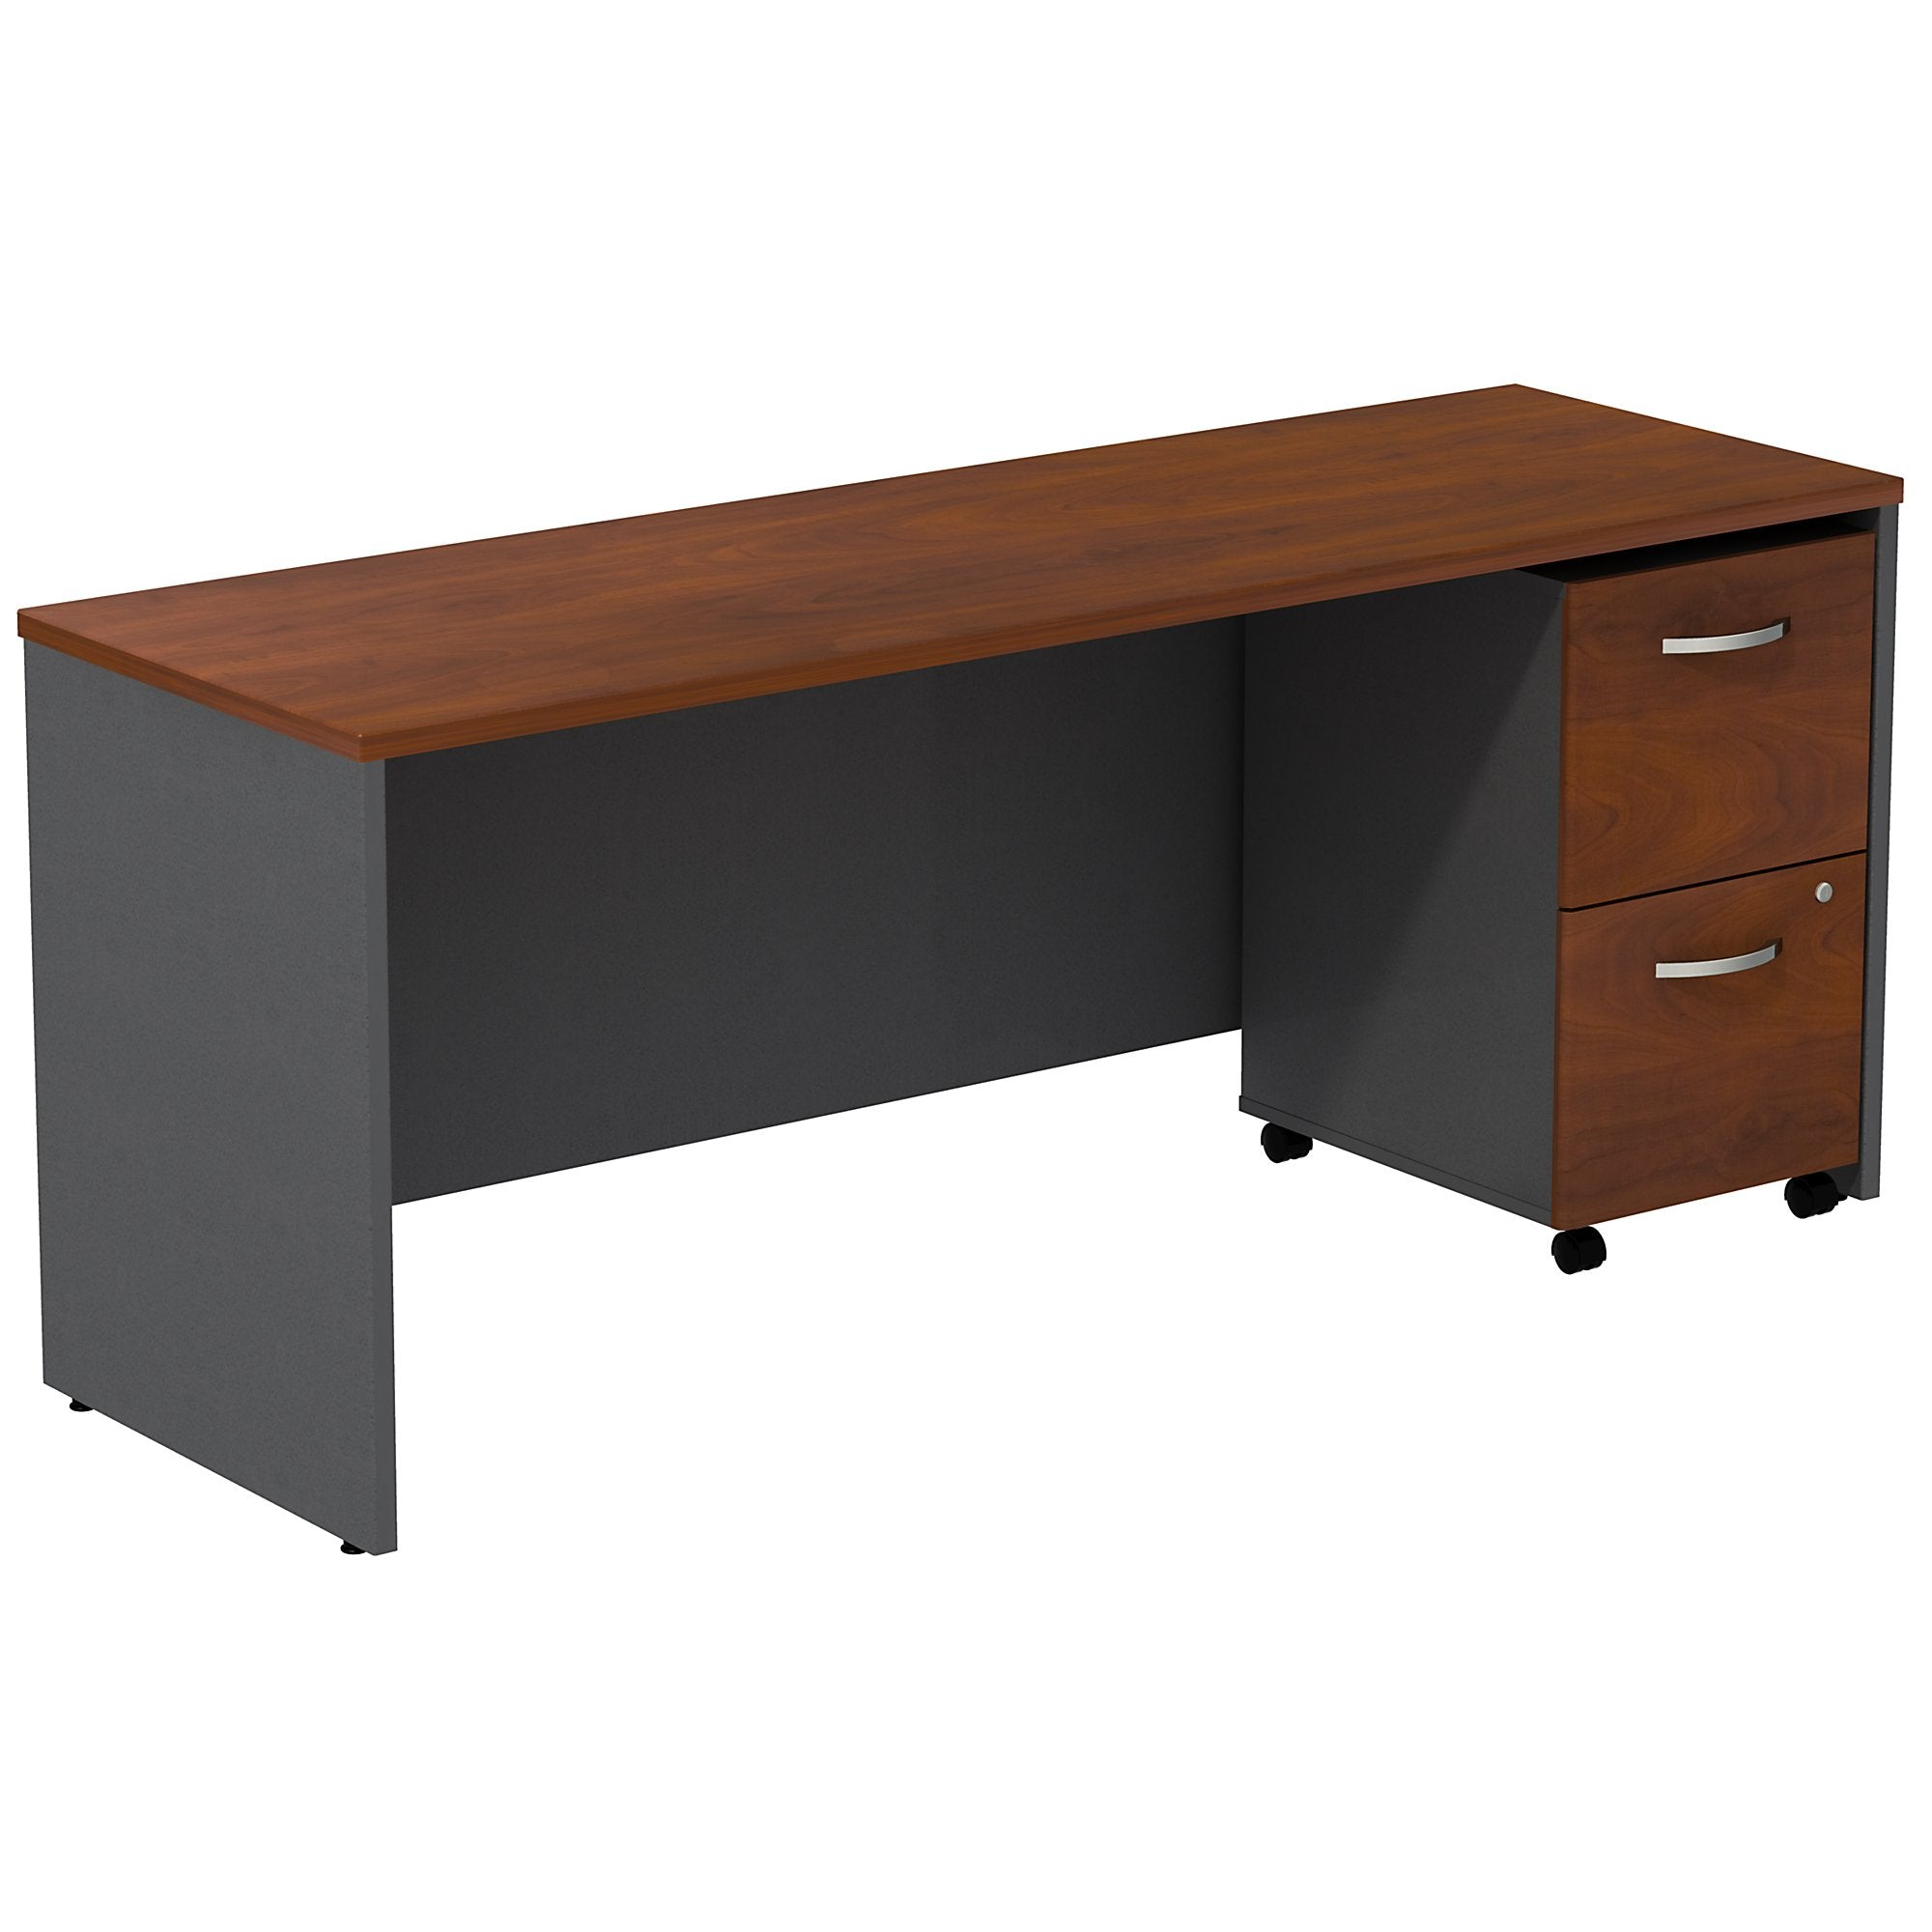 Bush Business Furniture Series C Desk Credenza with 2 Drawer Mobile Pedestal | Hansen Cherry